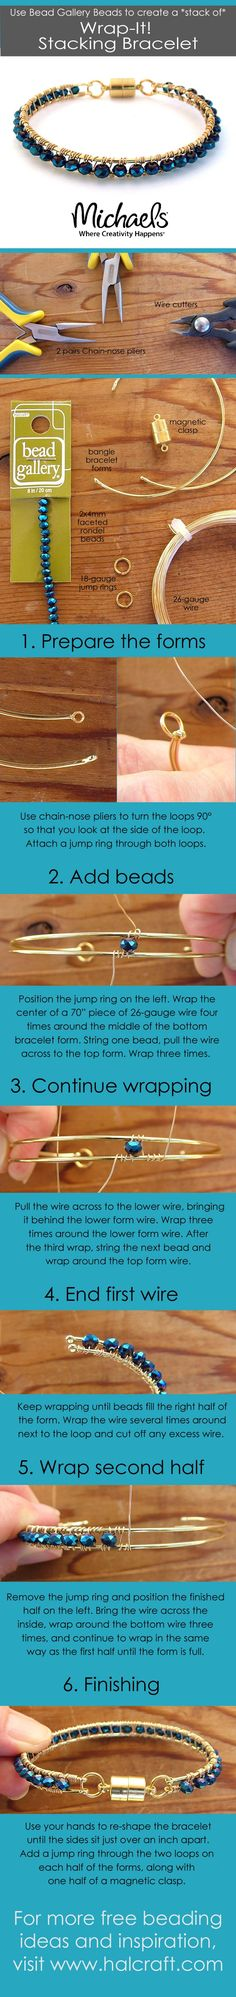 DIY Wrapped Bracelets by barb Switzer made with Bead Gallery beads. All…